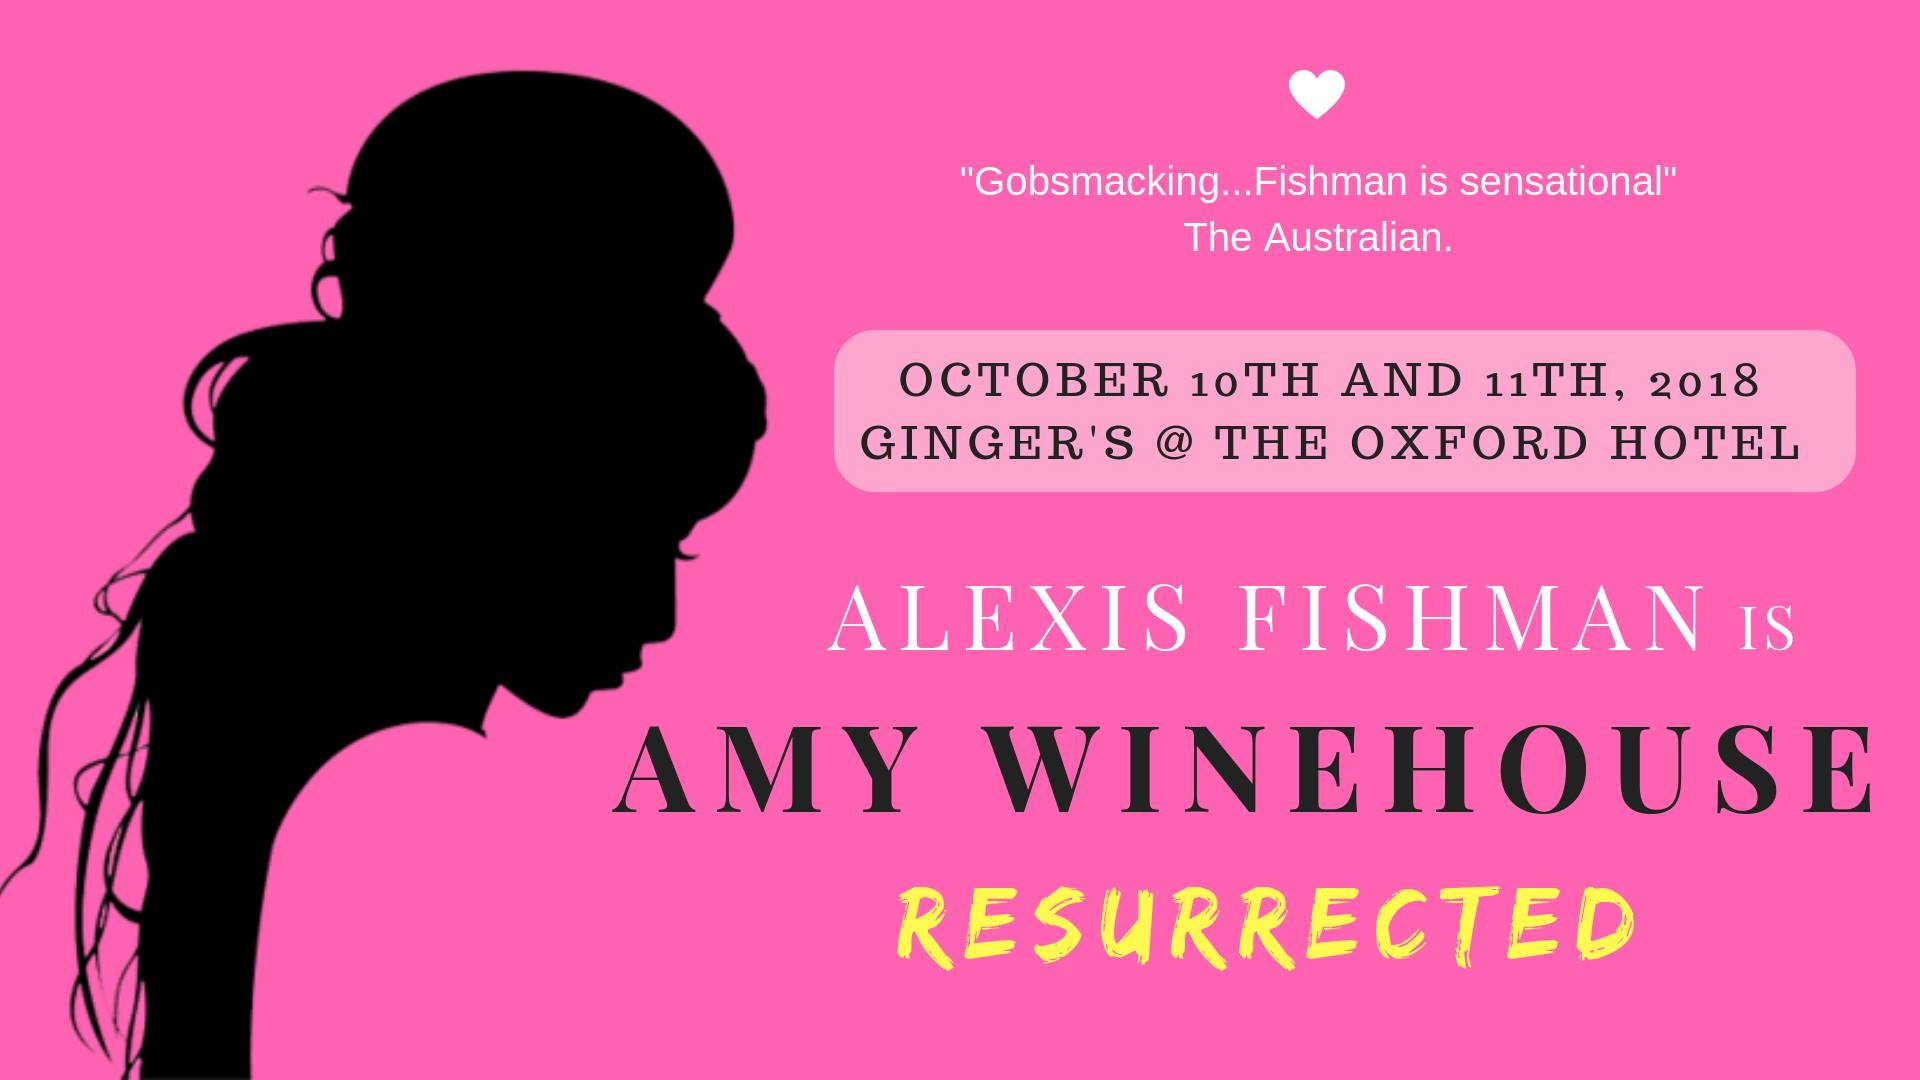 Alexis Fishman is Amy Reimagined - About the showAmy Winehouse has been resurrected, revived and reimagined in this brand new, hilarious and uplifting show starring world renowned cabaret star, Alexis Fishman.After the news arrives that her idol Tony Bennett would give anything to record with her again, Amy Winehouse finds her way back from wherever it is she went after her untimely death in 2011. She's ripe for a comeback, even if it's from the dead.Expect the beehive, the foul-mouth and all of Amy's hits, including some you may never have heard before.